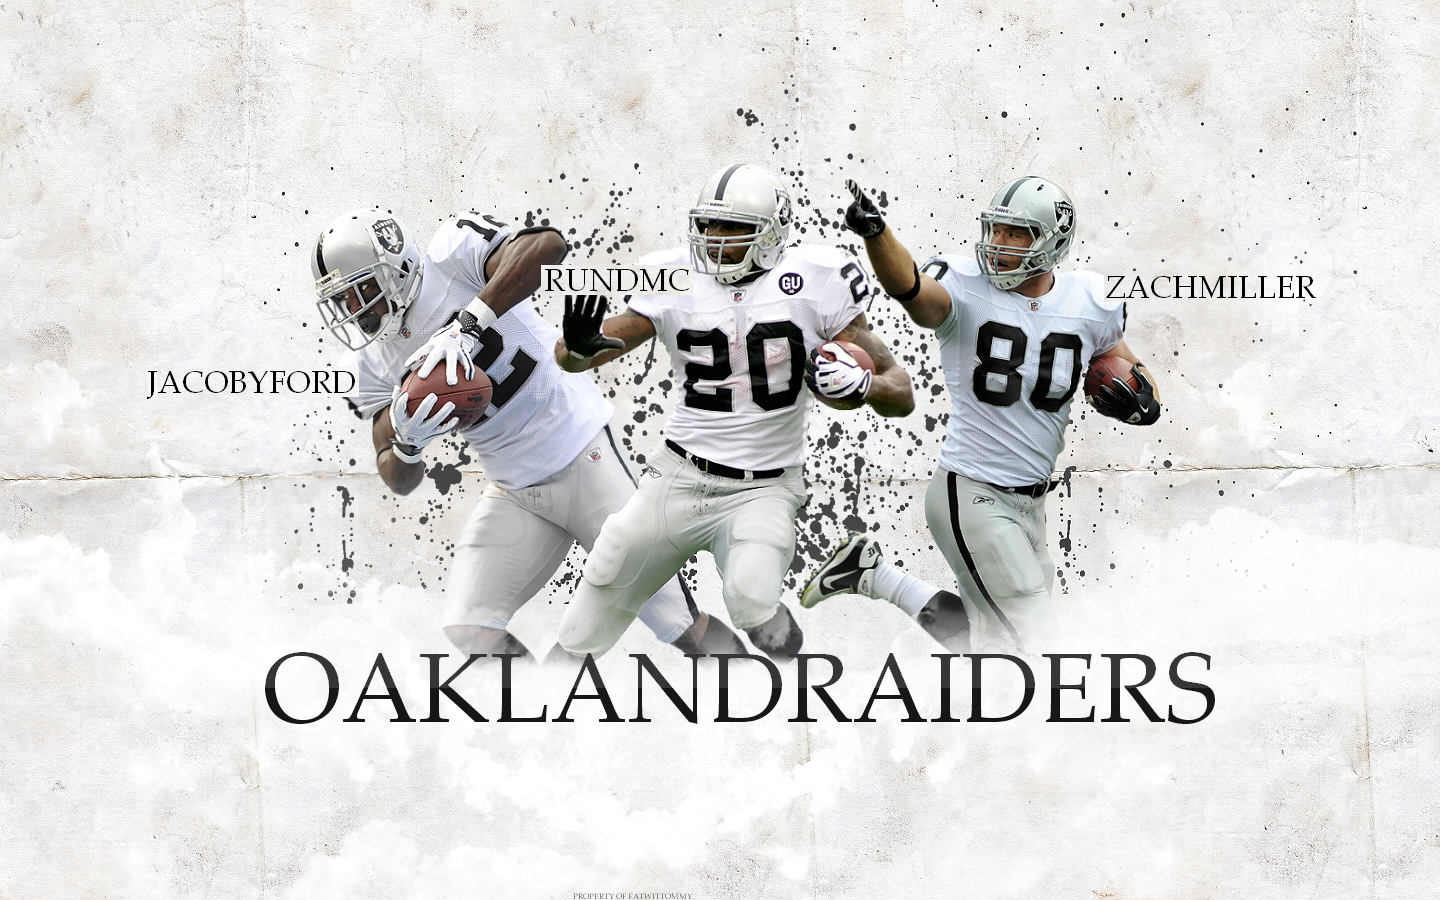 Oakland Raiders background Oakland Raiders wallpapers 1440x900